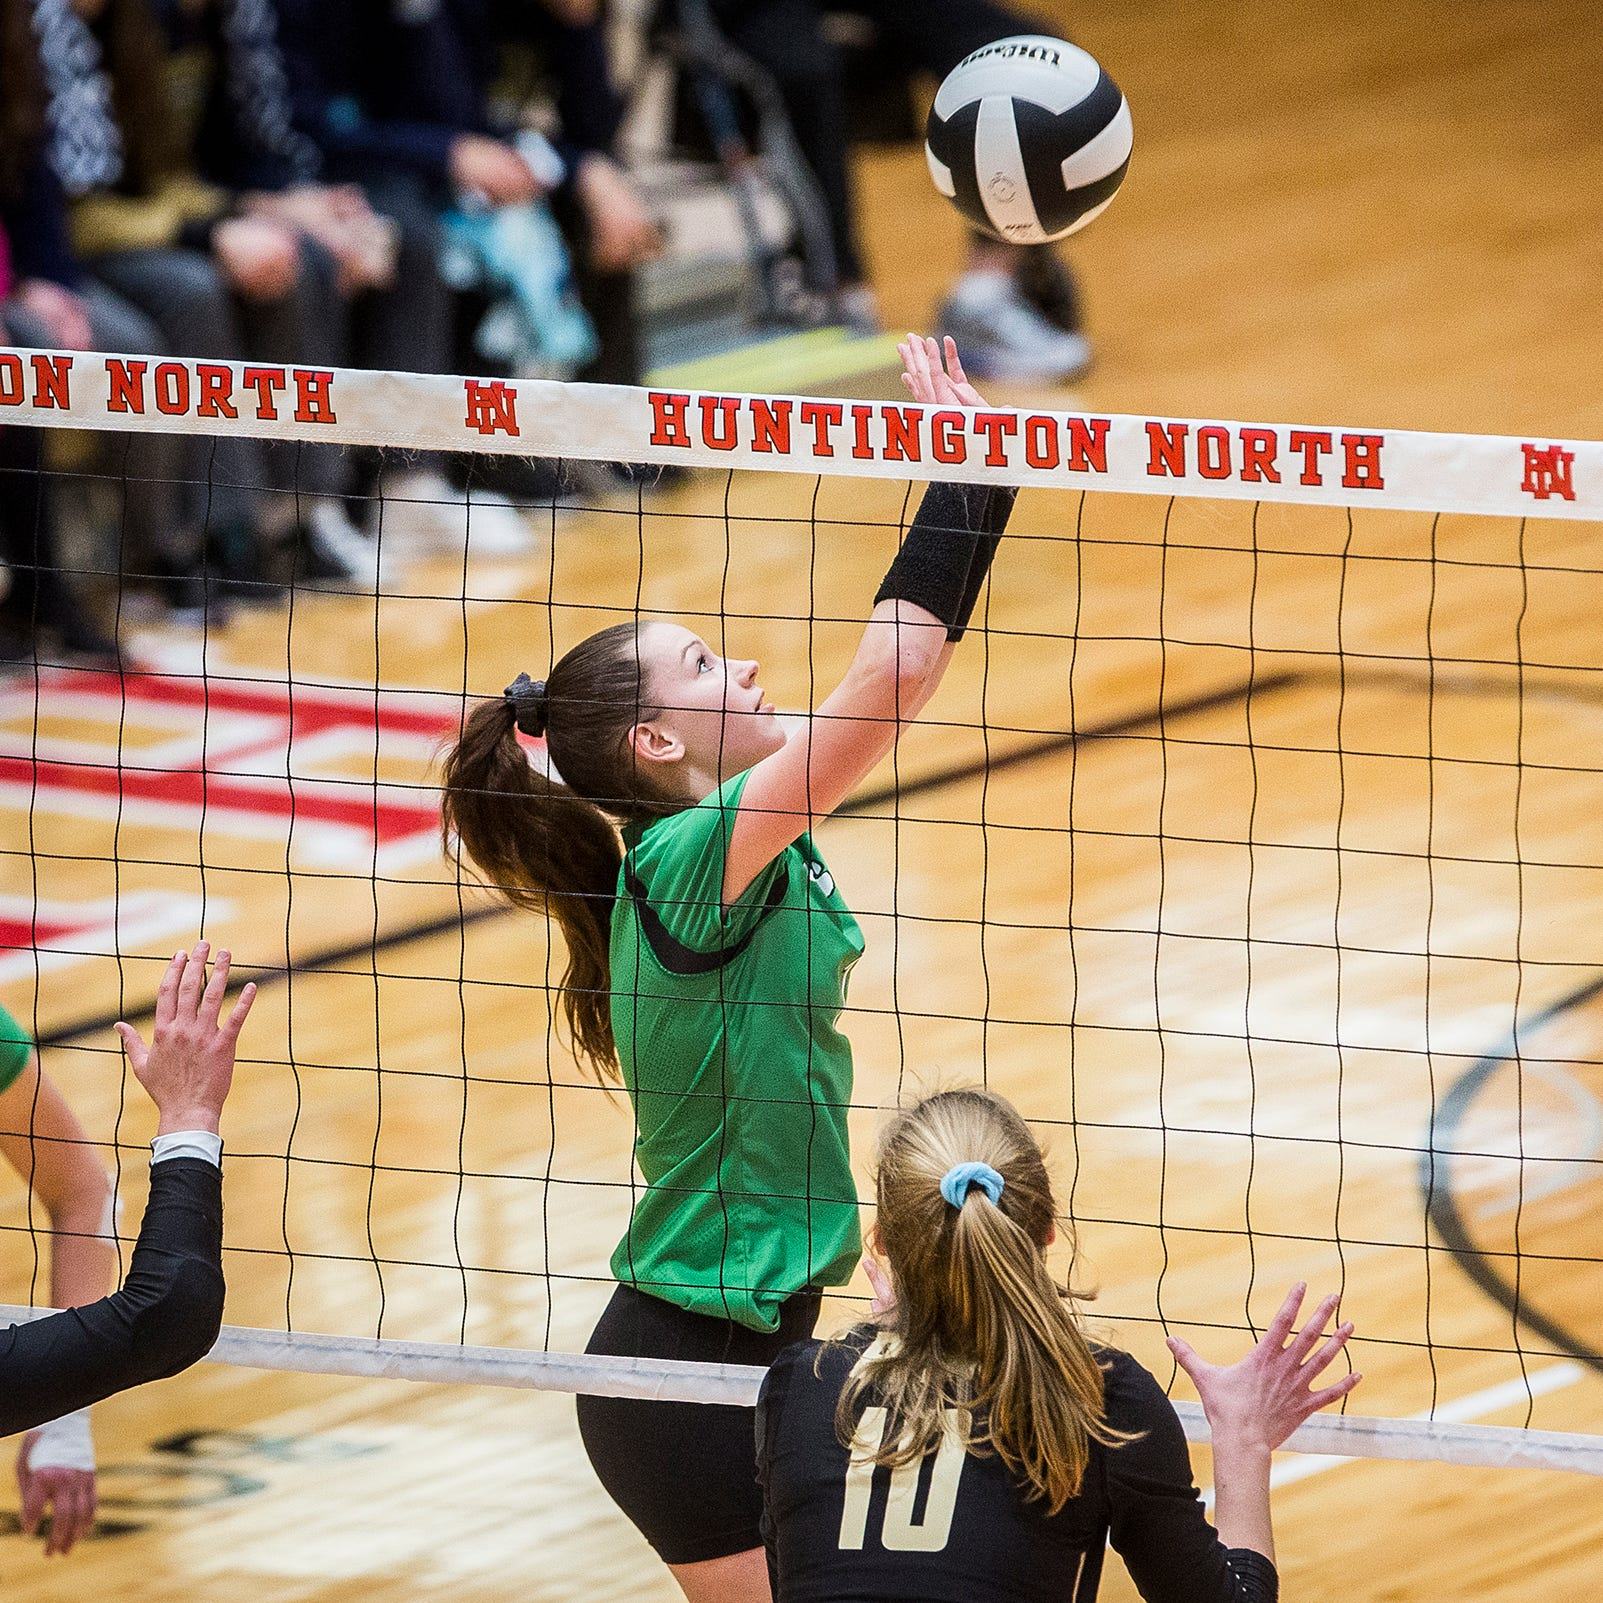 Yorktown volleyball player commits to Ball State, stays close to home